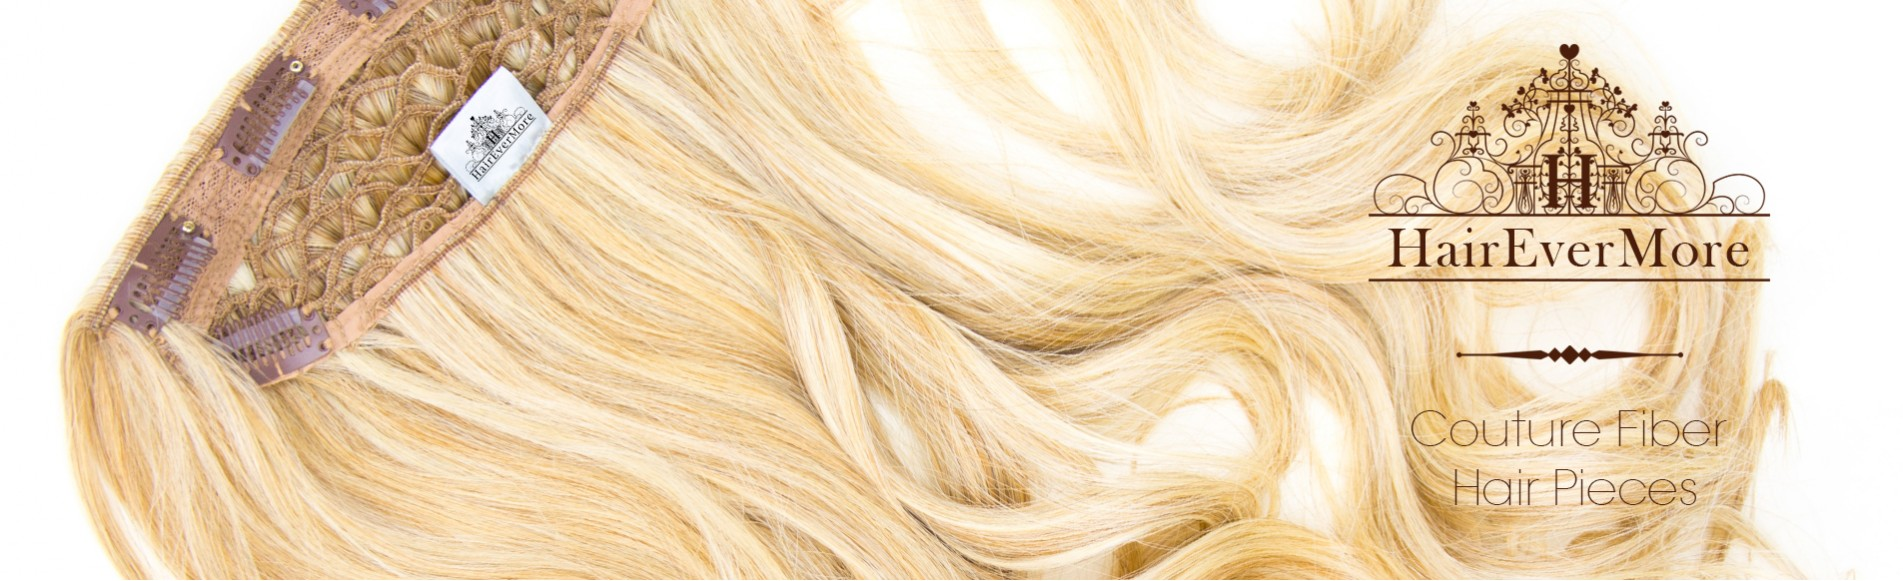 Hair Extensions HairEverMore